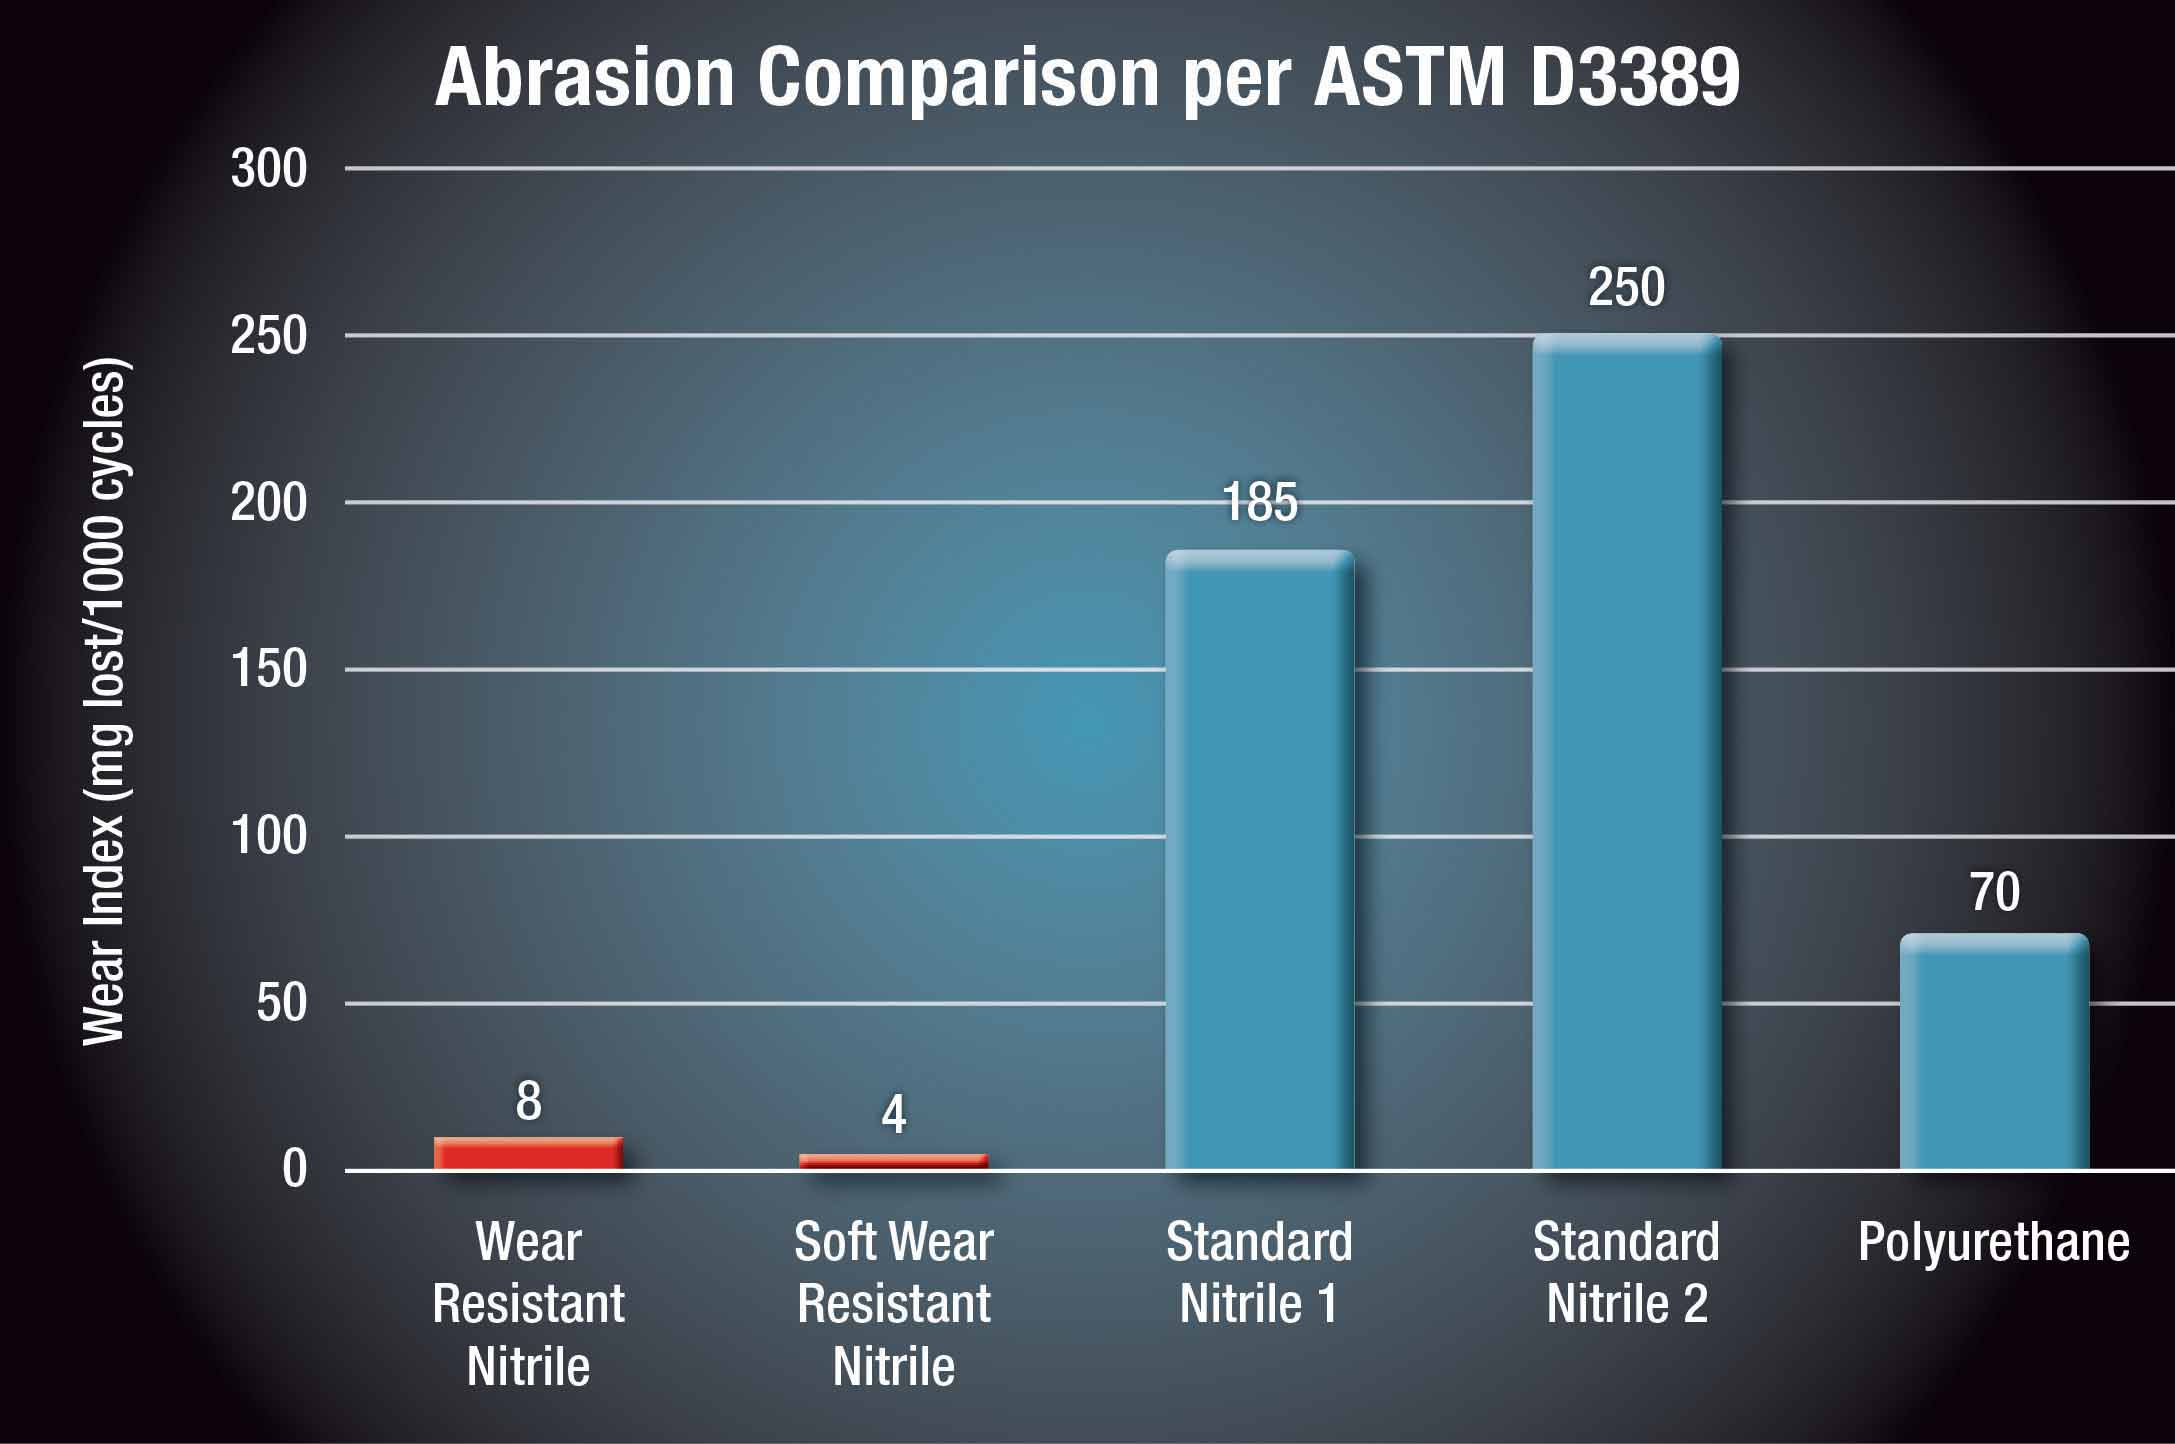 Abrasion Comparison Chart with Wear-Resistant Nitrile